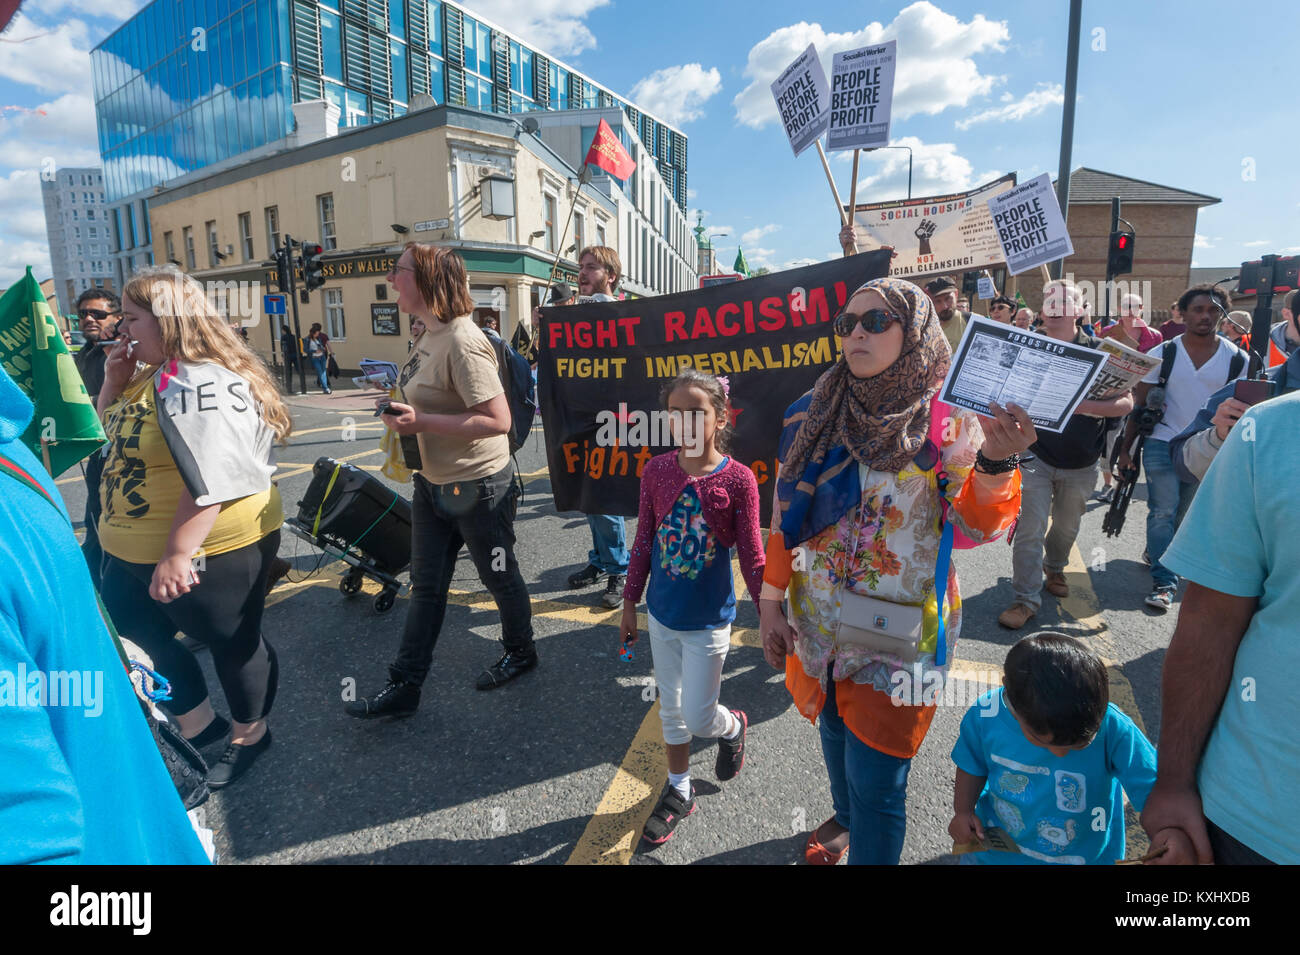 Near the front of the 'March Against Evictions' in Stratford is the 'Figth Racism! Fight Imperialism!' - Stock Image